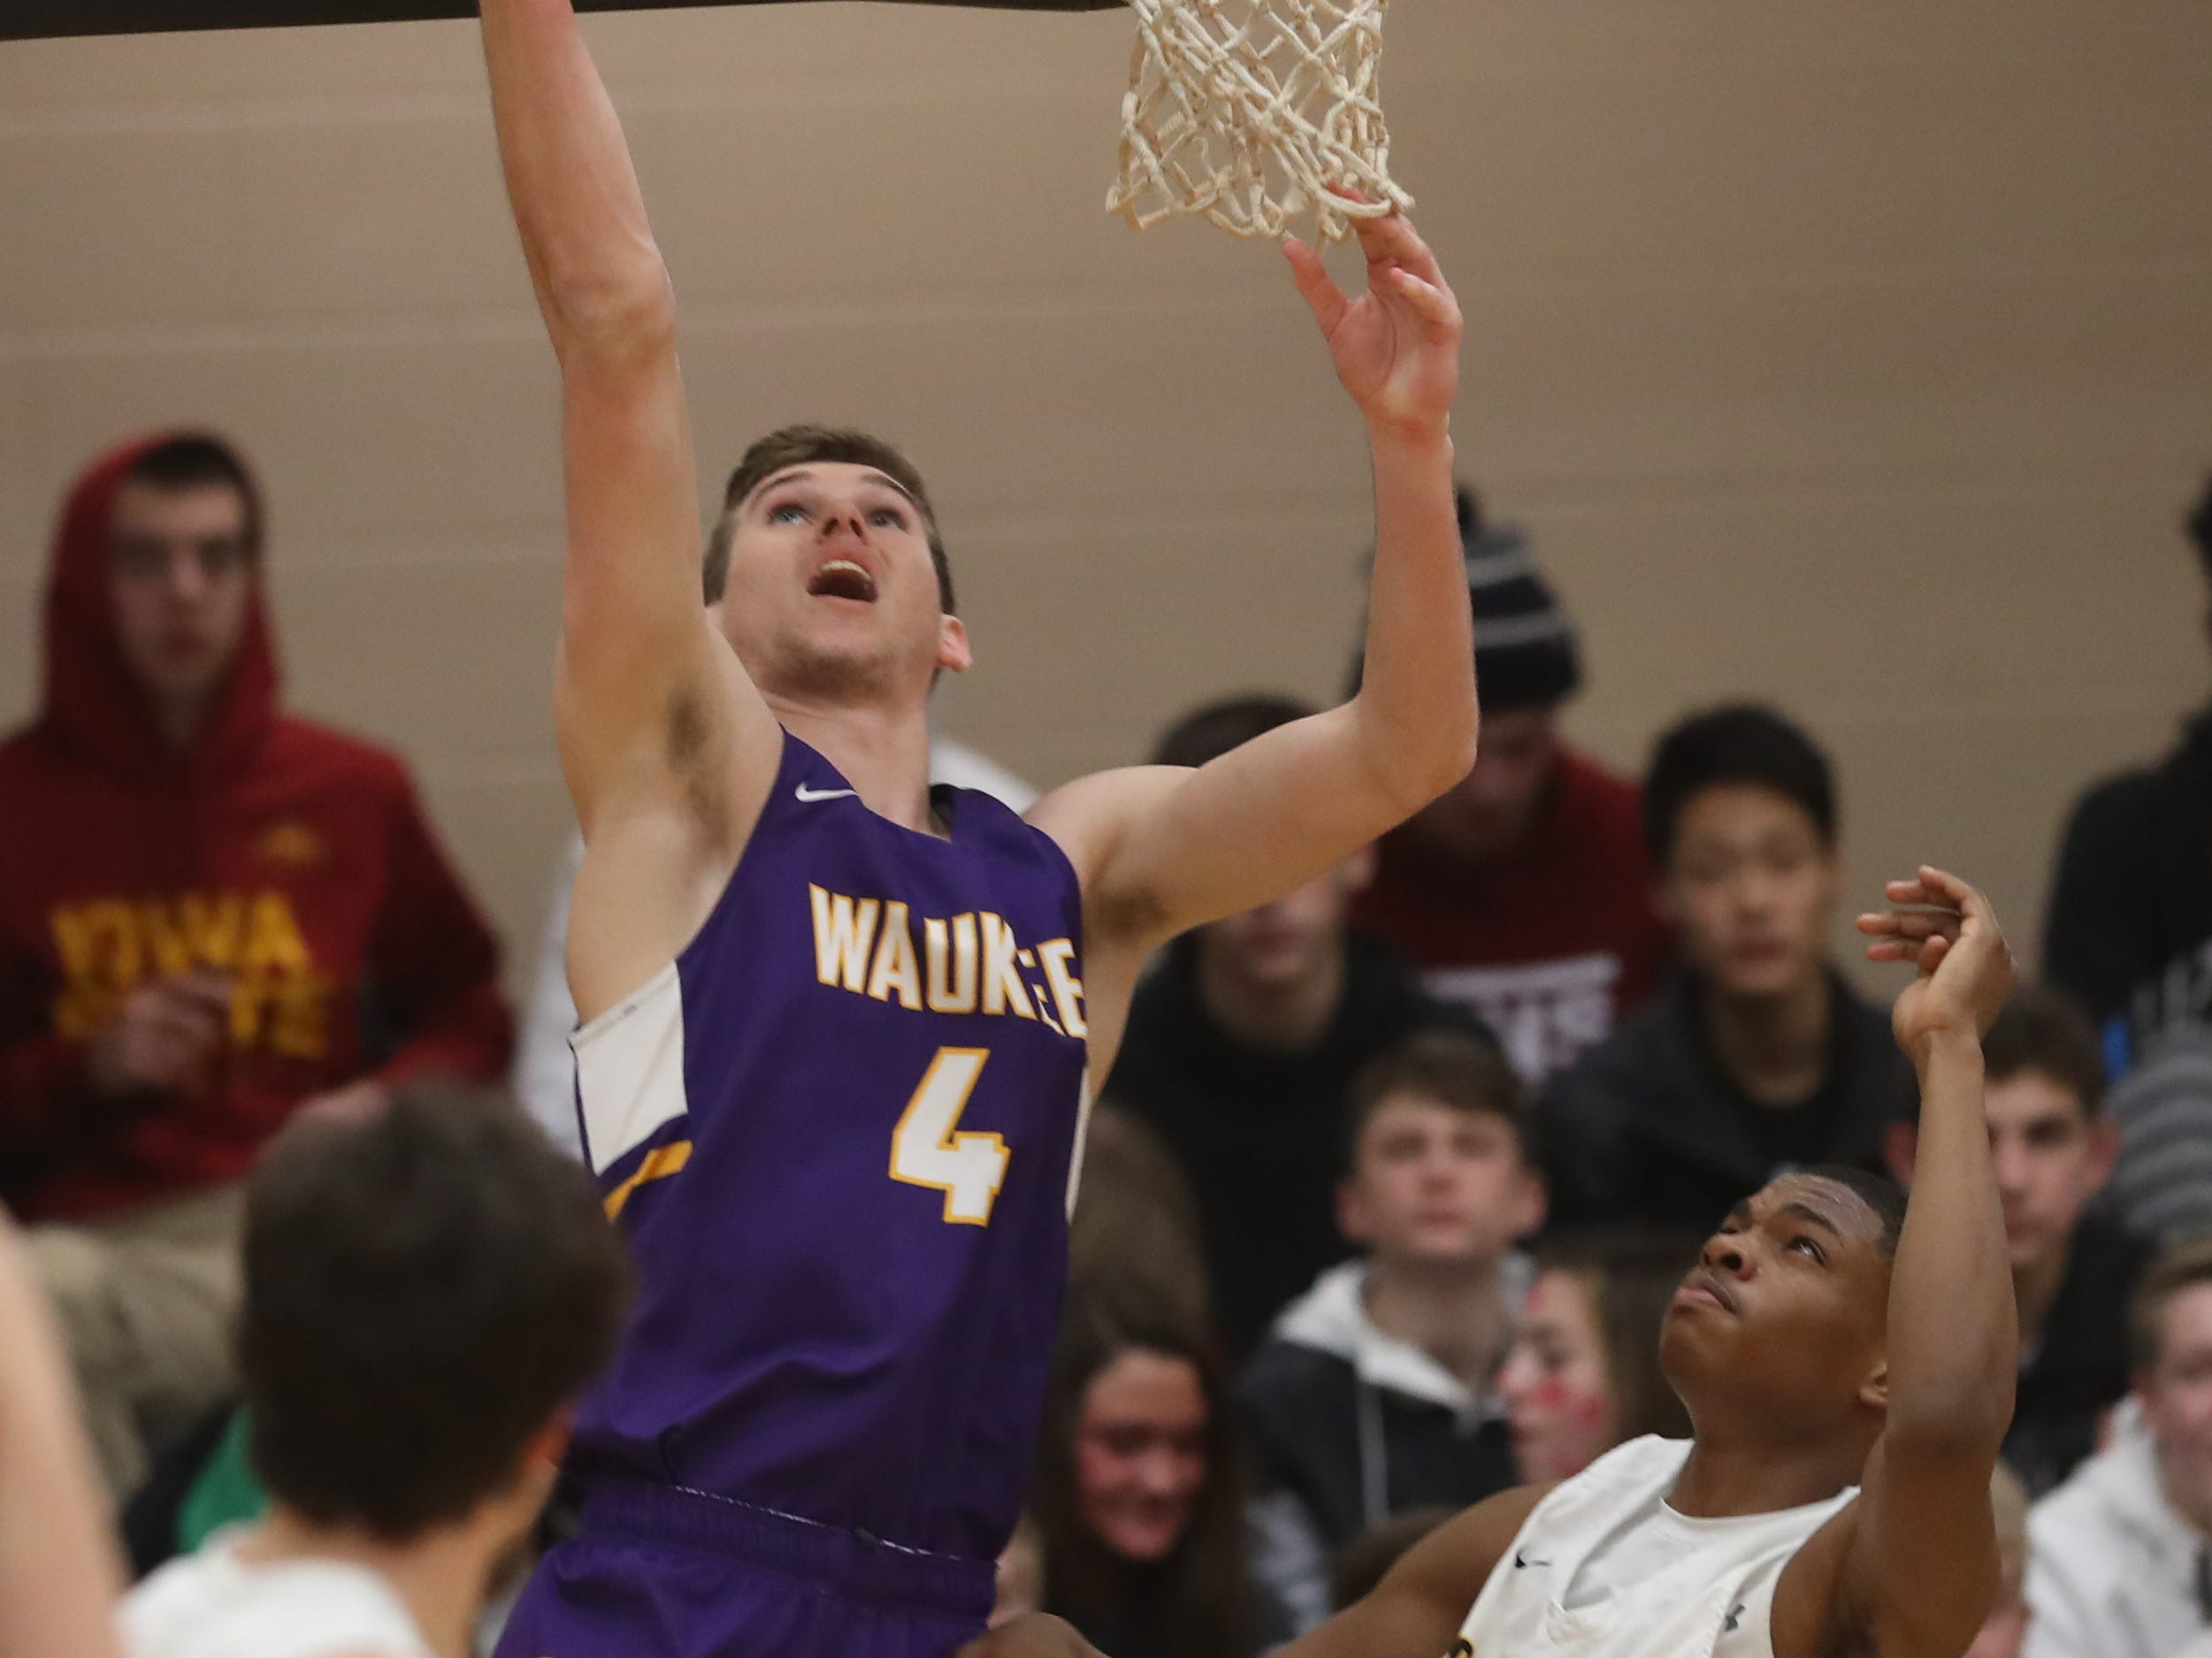 Waukee Warriors' Dylan Jones (4) scores on the reverse layup against the Southeast Polk Rams during a game on Feb. 1, 2019 at Southeast Polk High School.